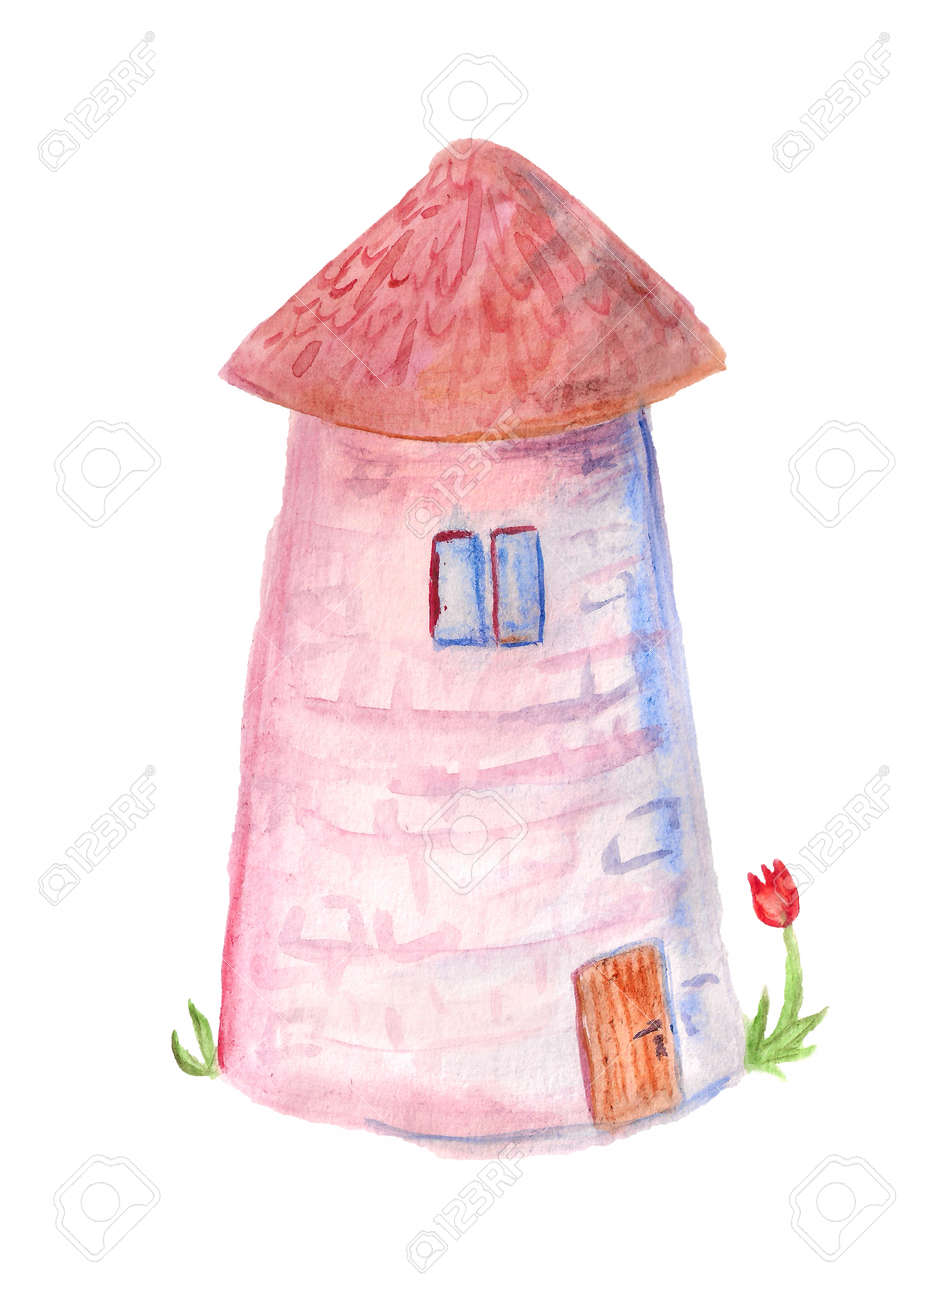 Watercolor Image Of Pink House Like As Tower On White Background ...